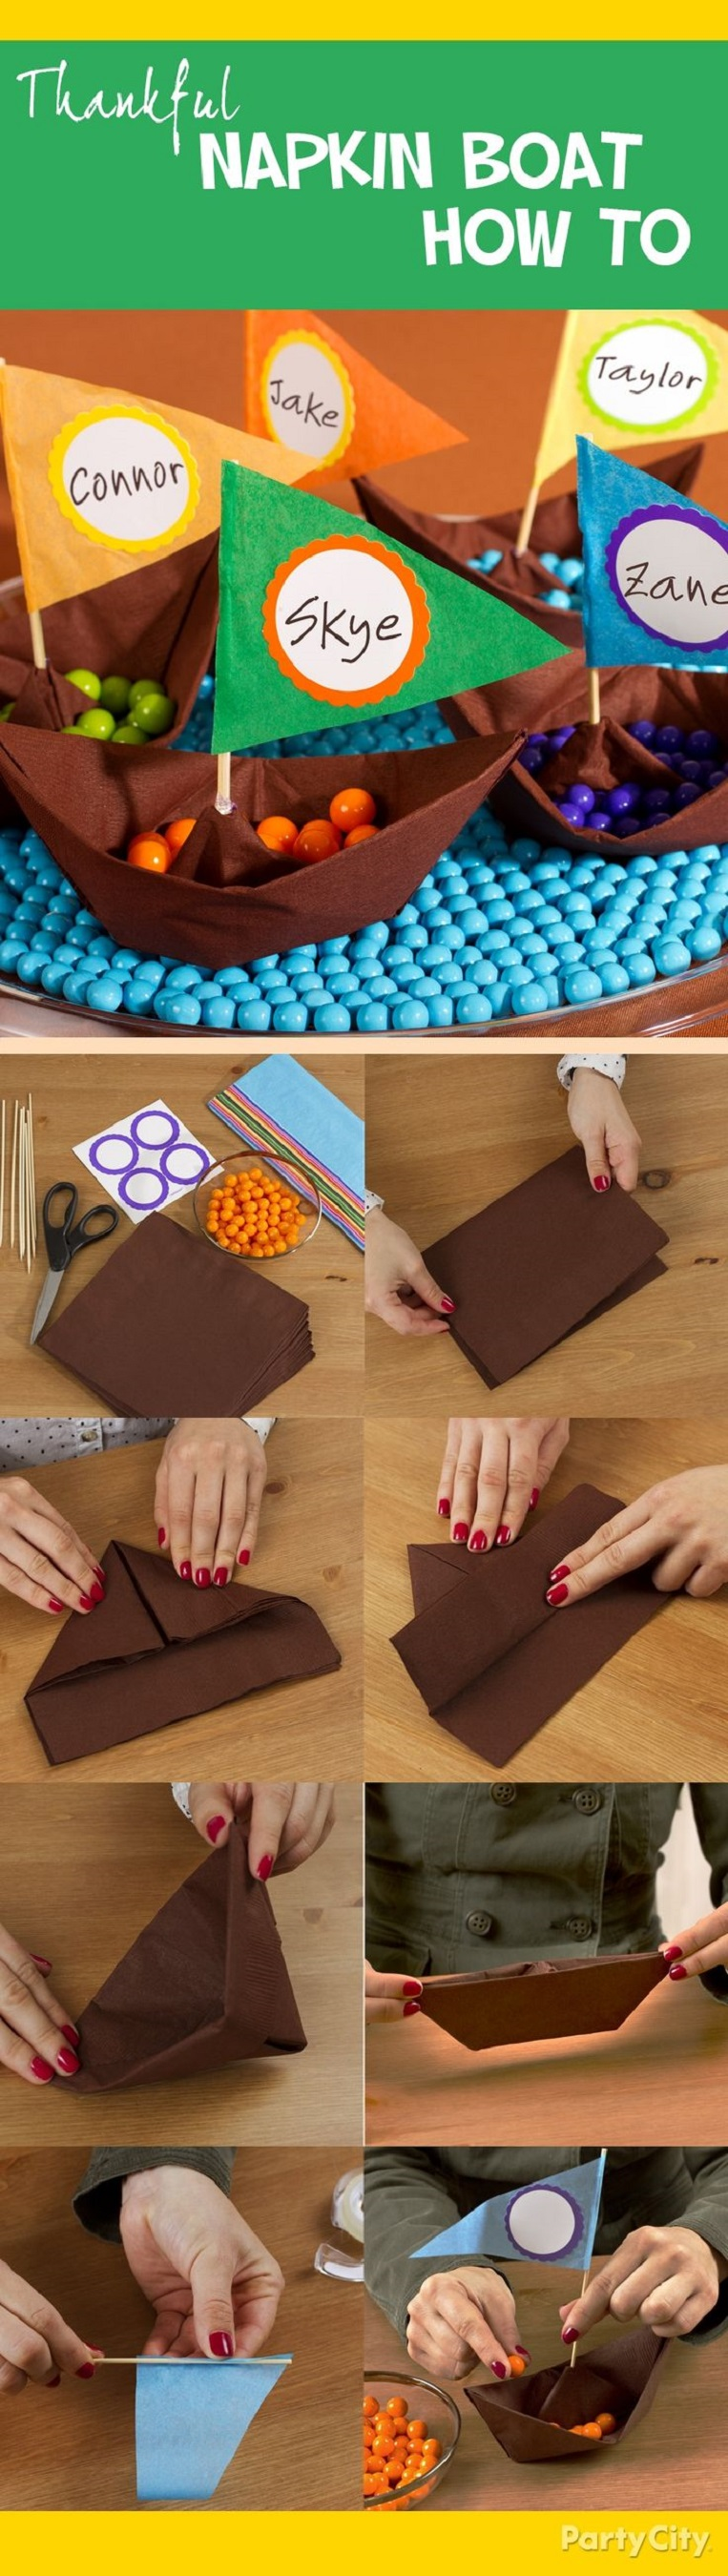 15 Interesting DIY Ideas to Serve Food for Thanksgiving Day | GleamItUp